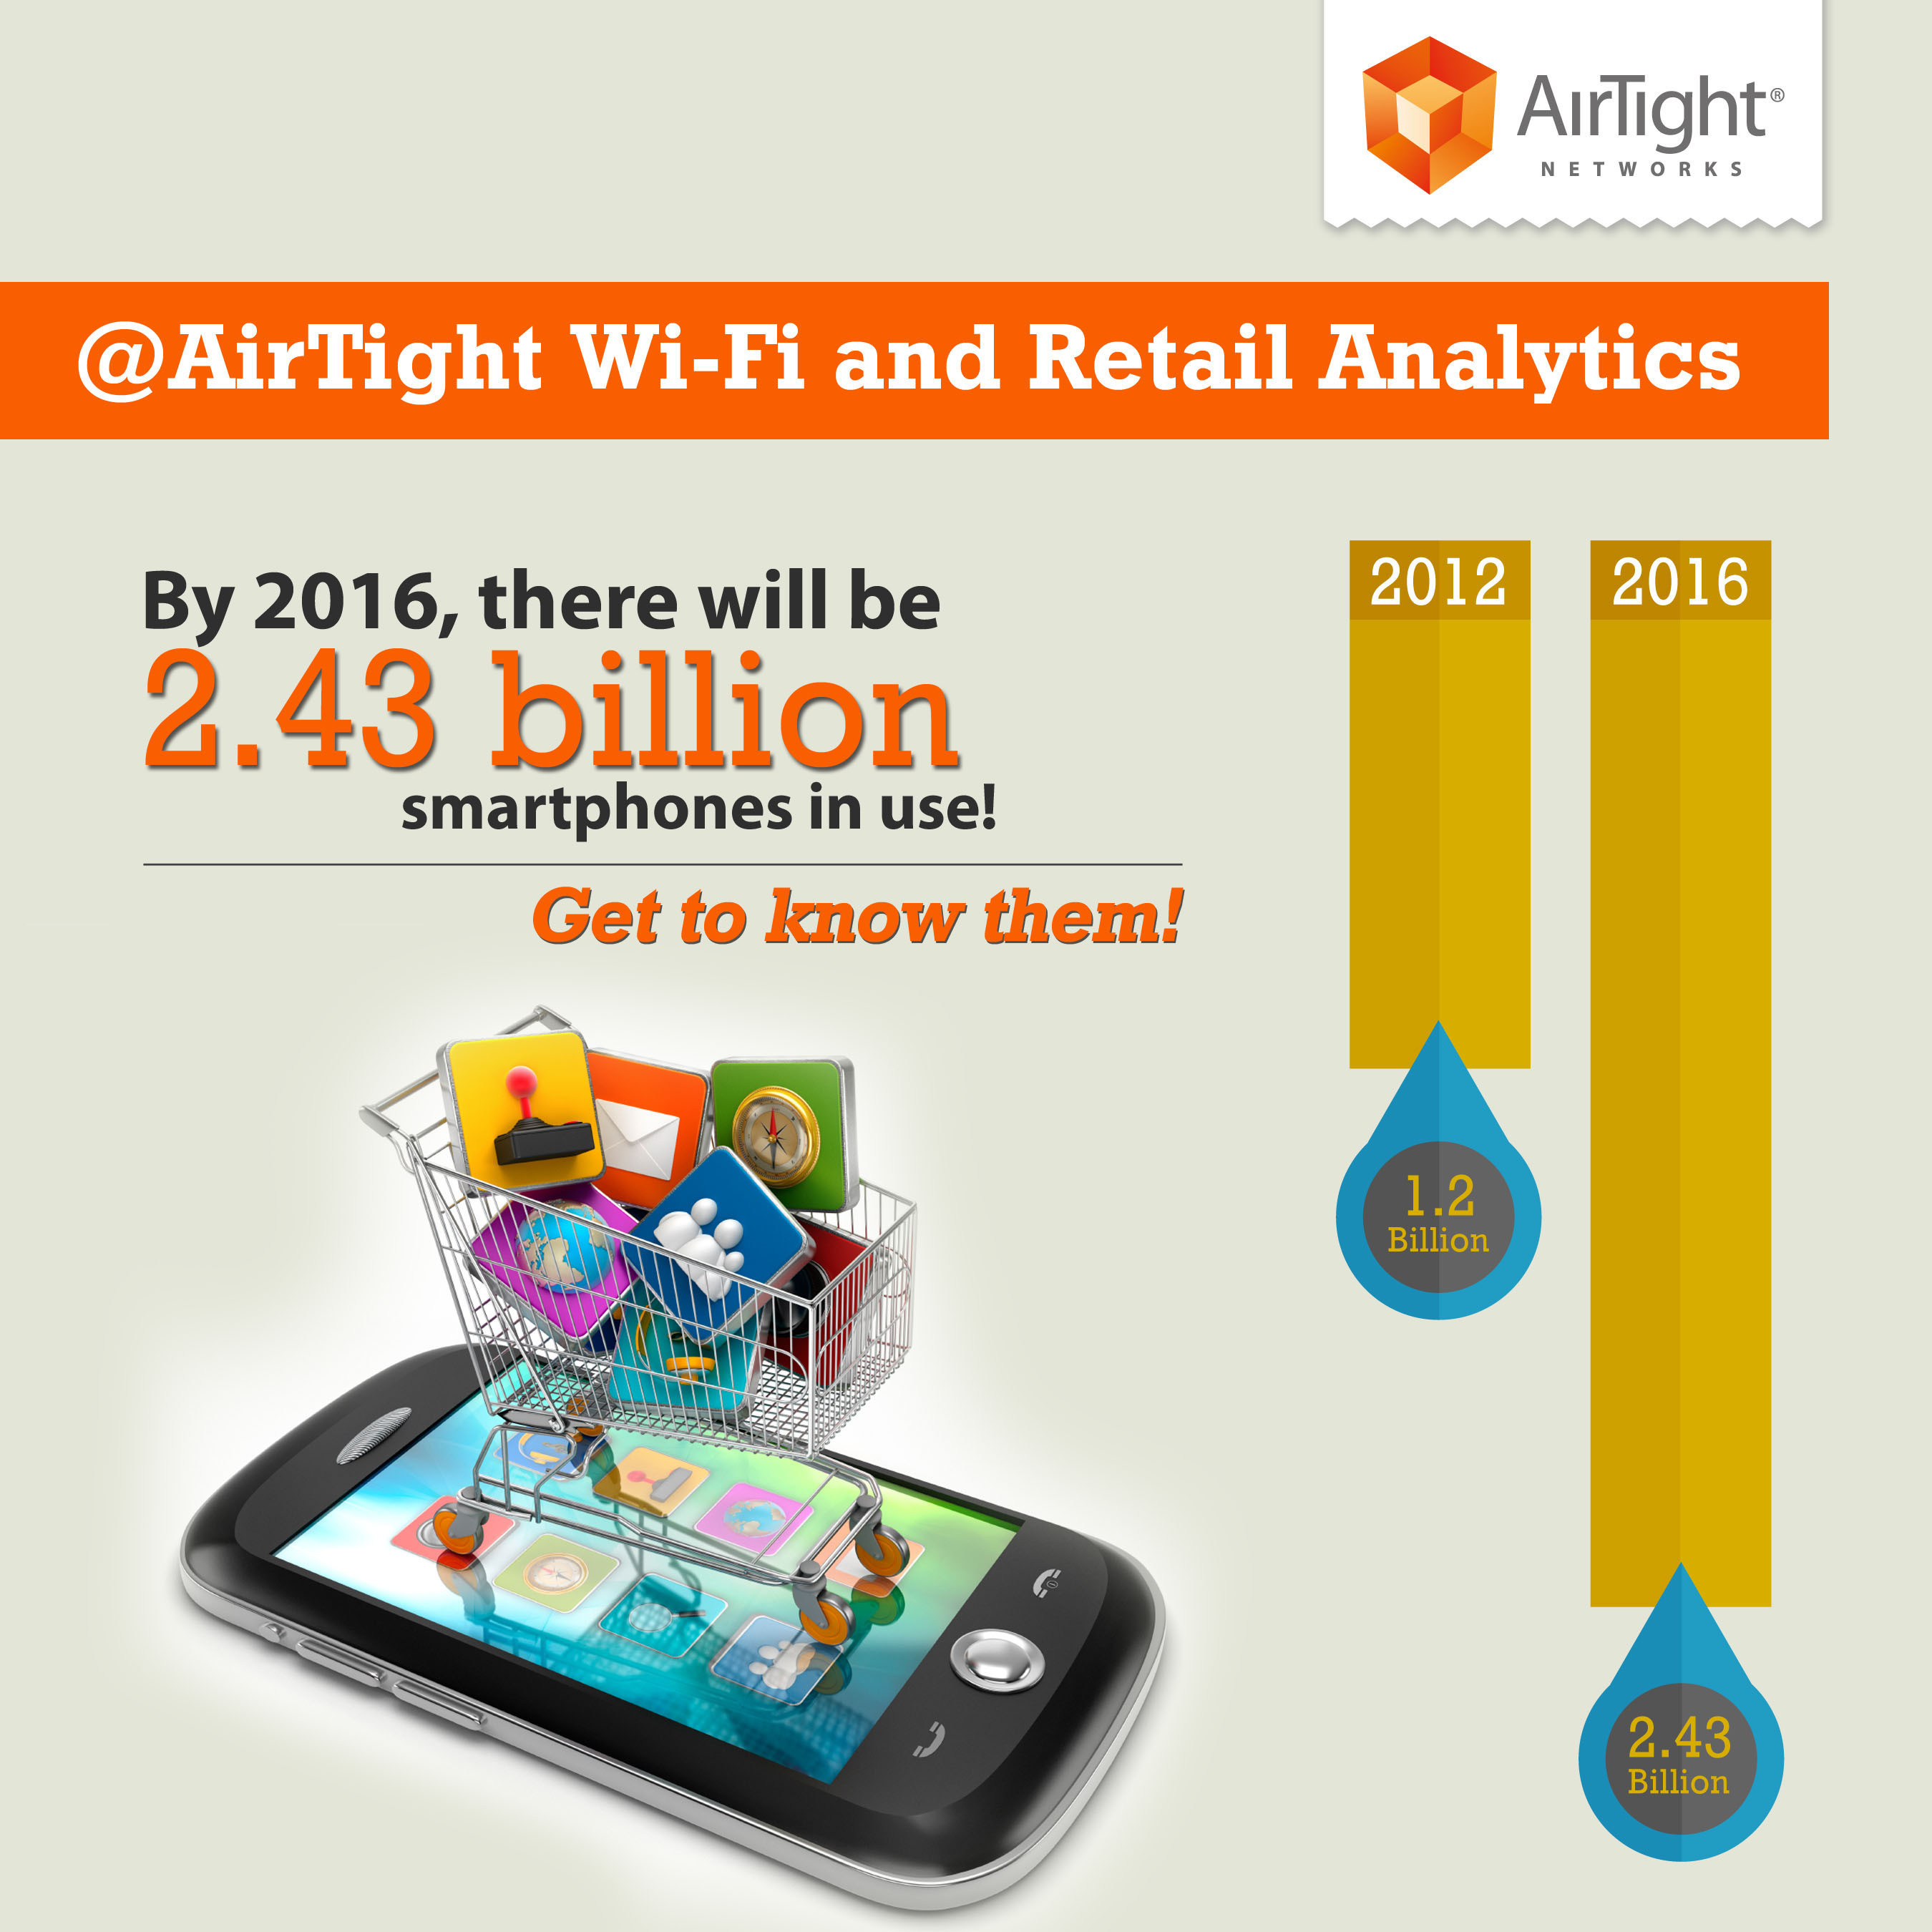 AirTight Launches Retail Wi-Fi Analytics Engine for In-Store Business Intelligence and Customer